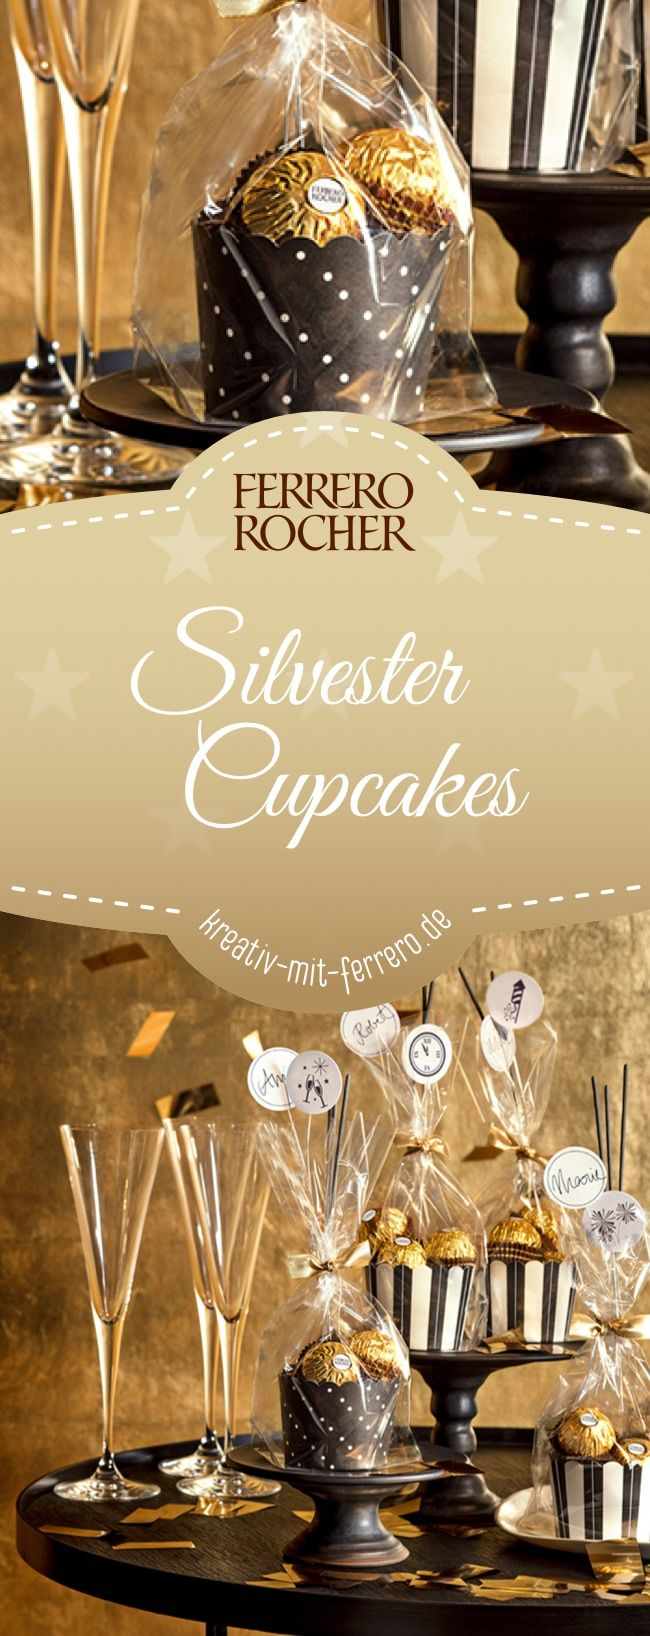 Silvester Cupcakes